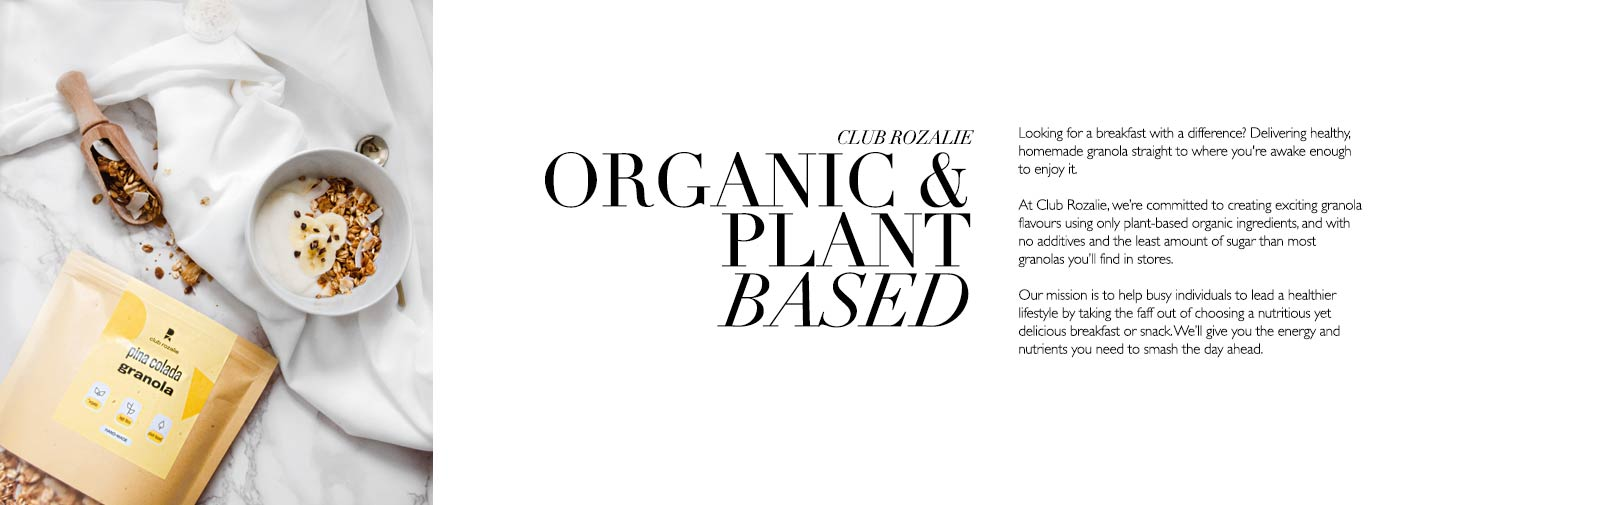 CLUB ROZALIE - ORGANIC & PLANT BASE - Club Rozalie - Looking for a breakfast with a difference? Delivering healthy, homemade granola straight to where you're awake enough to enjoy it.  At Club Rozalie, we're committed to creating exciting granola flavours using only plant-based organic ingredients, and with no additives and the least amount of sugar than most granolas you'll find in stores.  Our mission is to help busy individuals to lead a healthier lifestyle by taking the faff out of choosing a nutritious yet delicious breakfast or snack. We'll give you the energy and nutrients you need to smash the day ahead.